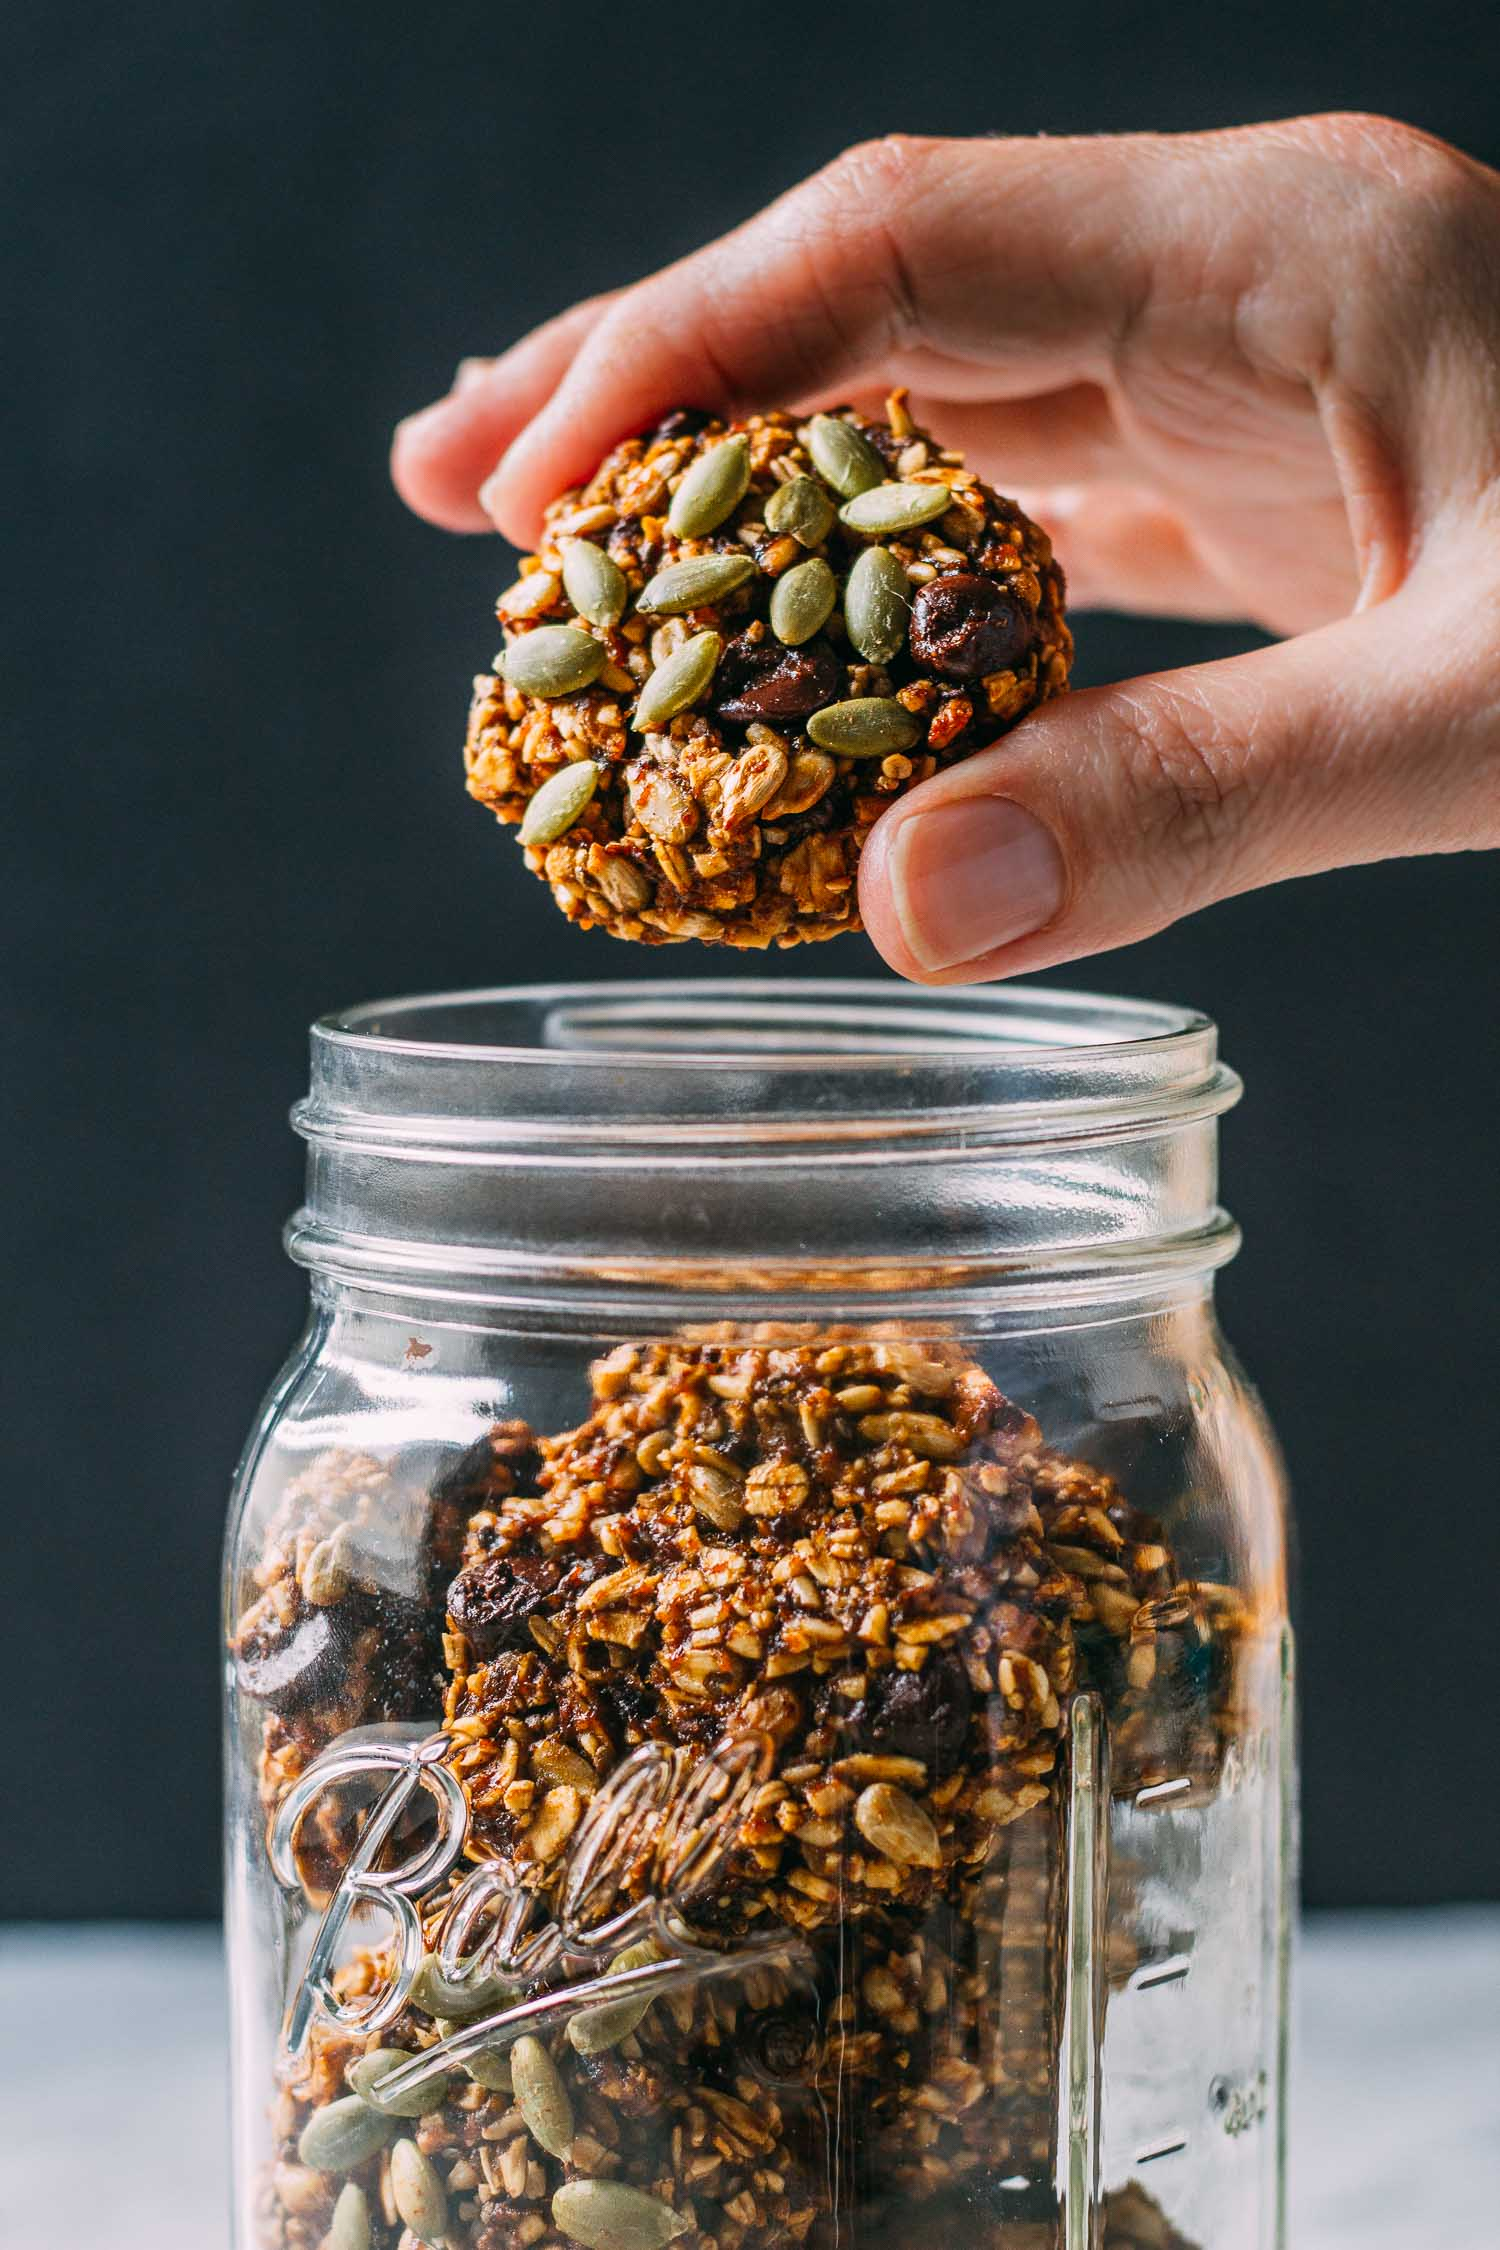 Pumpkin Power Breakfast Worthy Cookies #gluten-free #vegan #wfpb #wfpbno #plant-based #recipe #recipes #cookies #breakfast #cookie #pumpkin #dessert #walnuts #flax #healthy #make-ahead #snack #treat #lunch #fall #thanksgiving #halloween #sunflower #seeds #plums #prunes